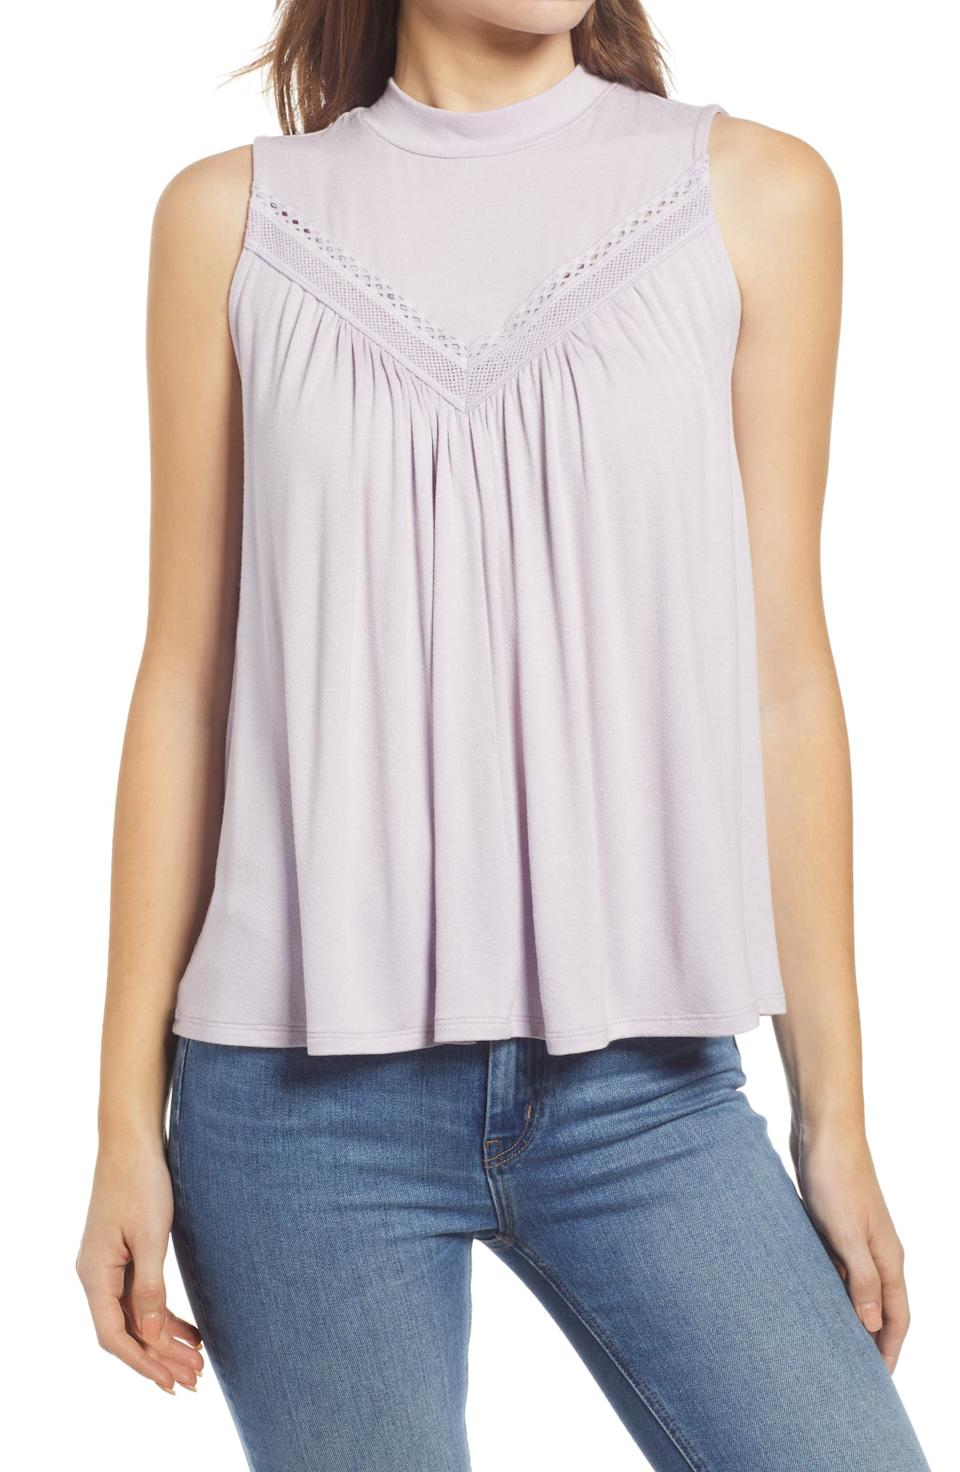 Everleigh Lace Knit Tank. Image via Nordstrom.